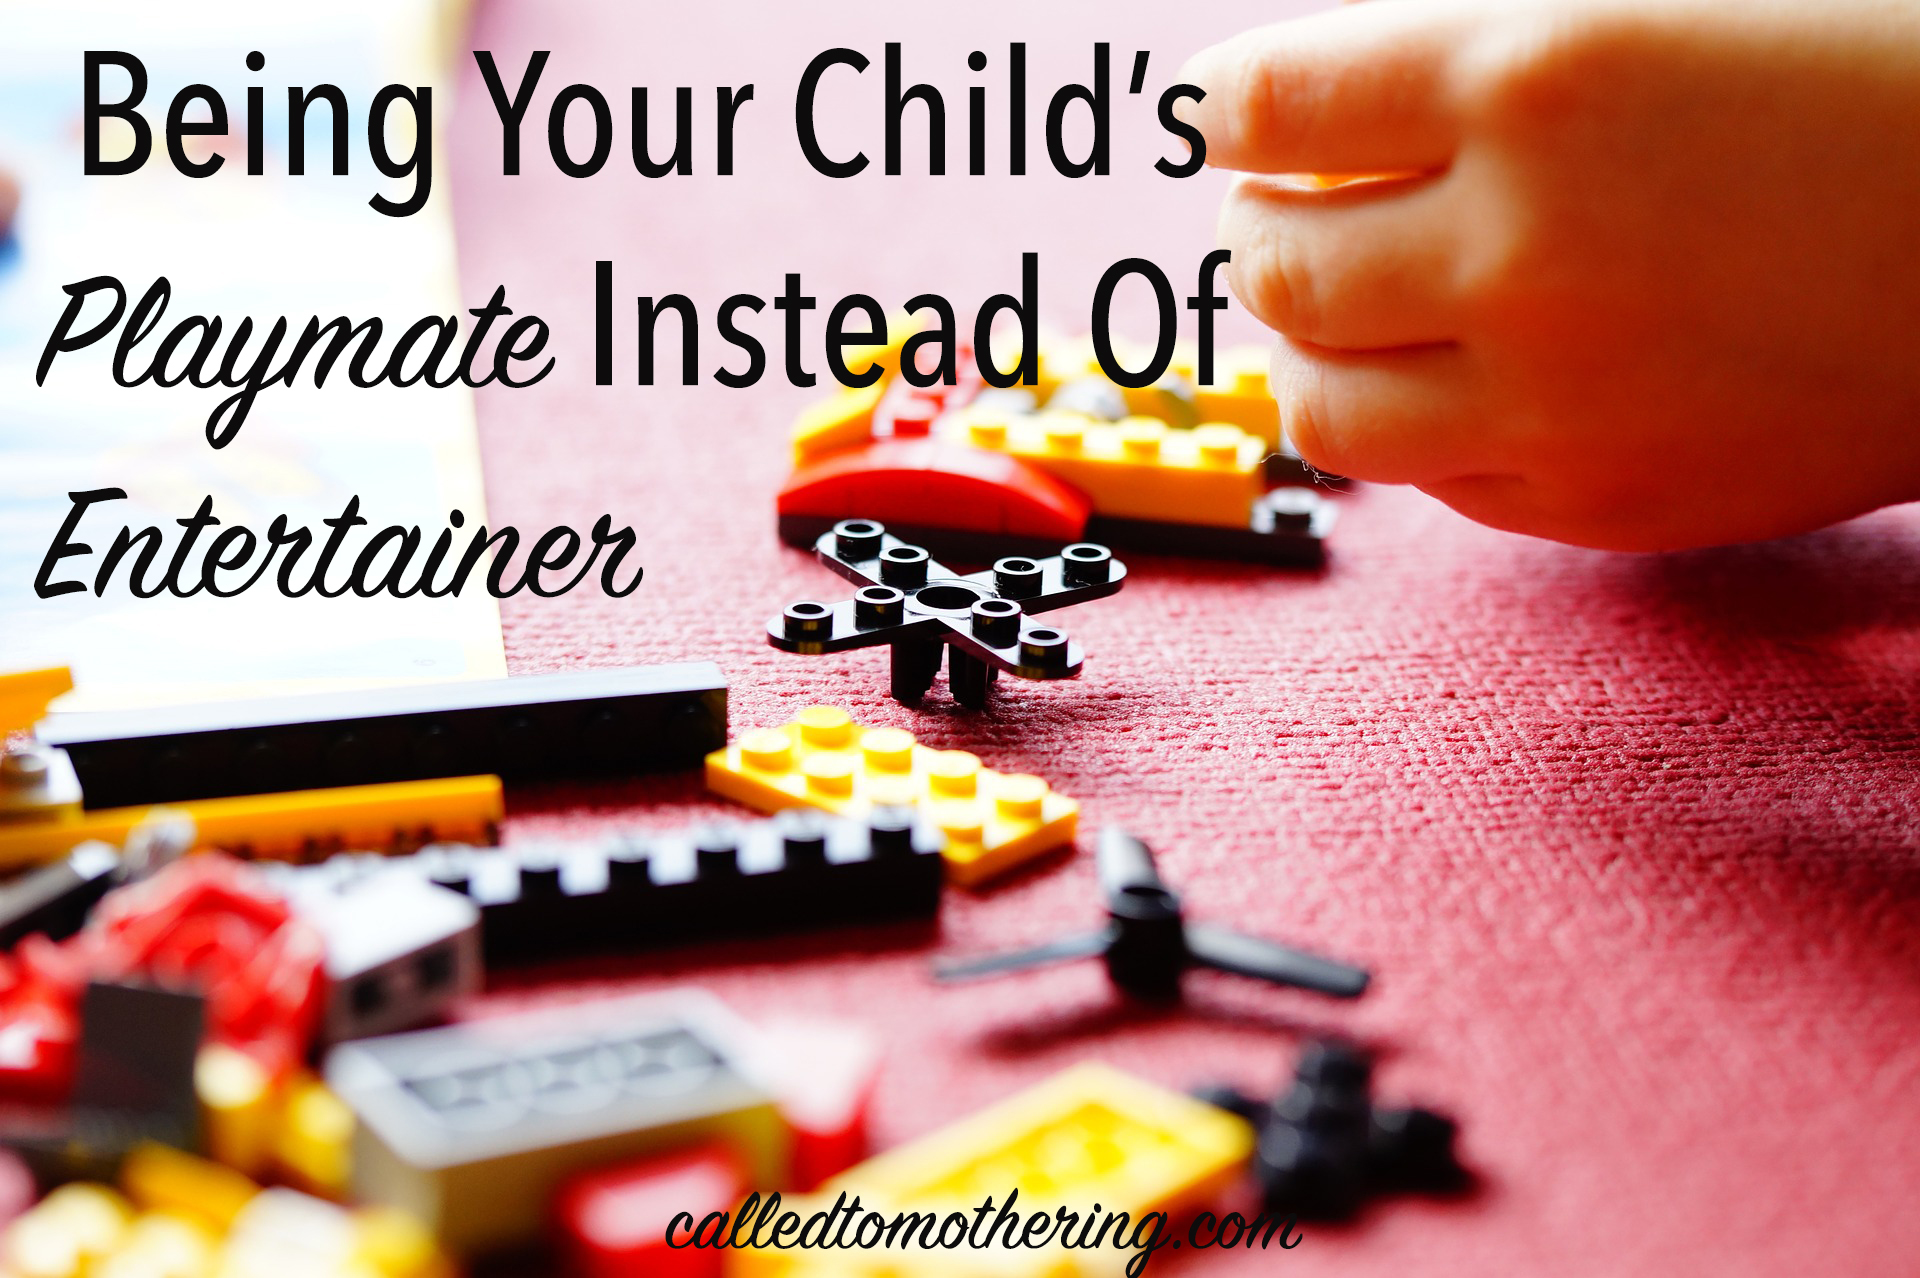 Being Your Child's Playmate Instead of Entertainer